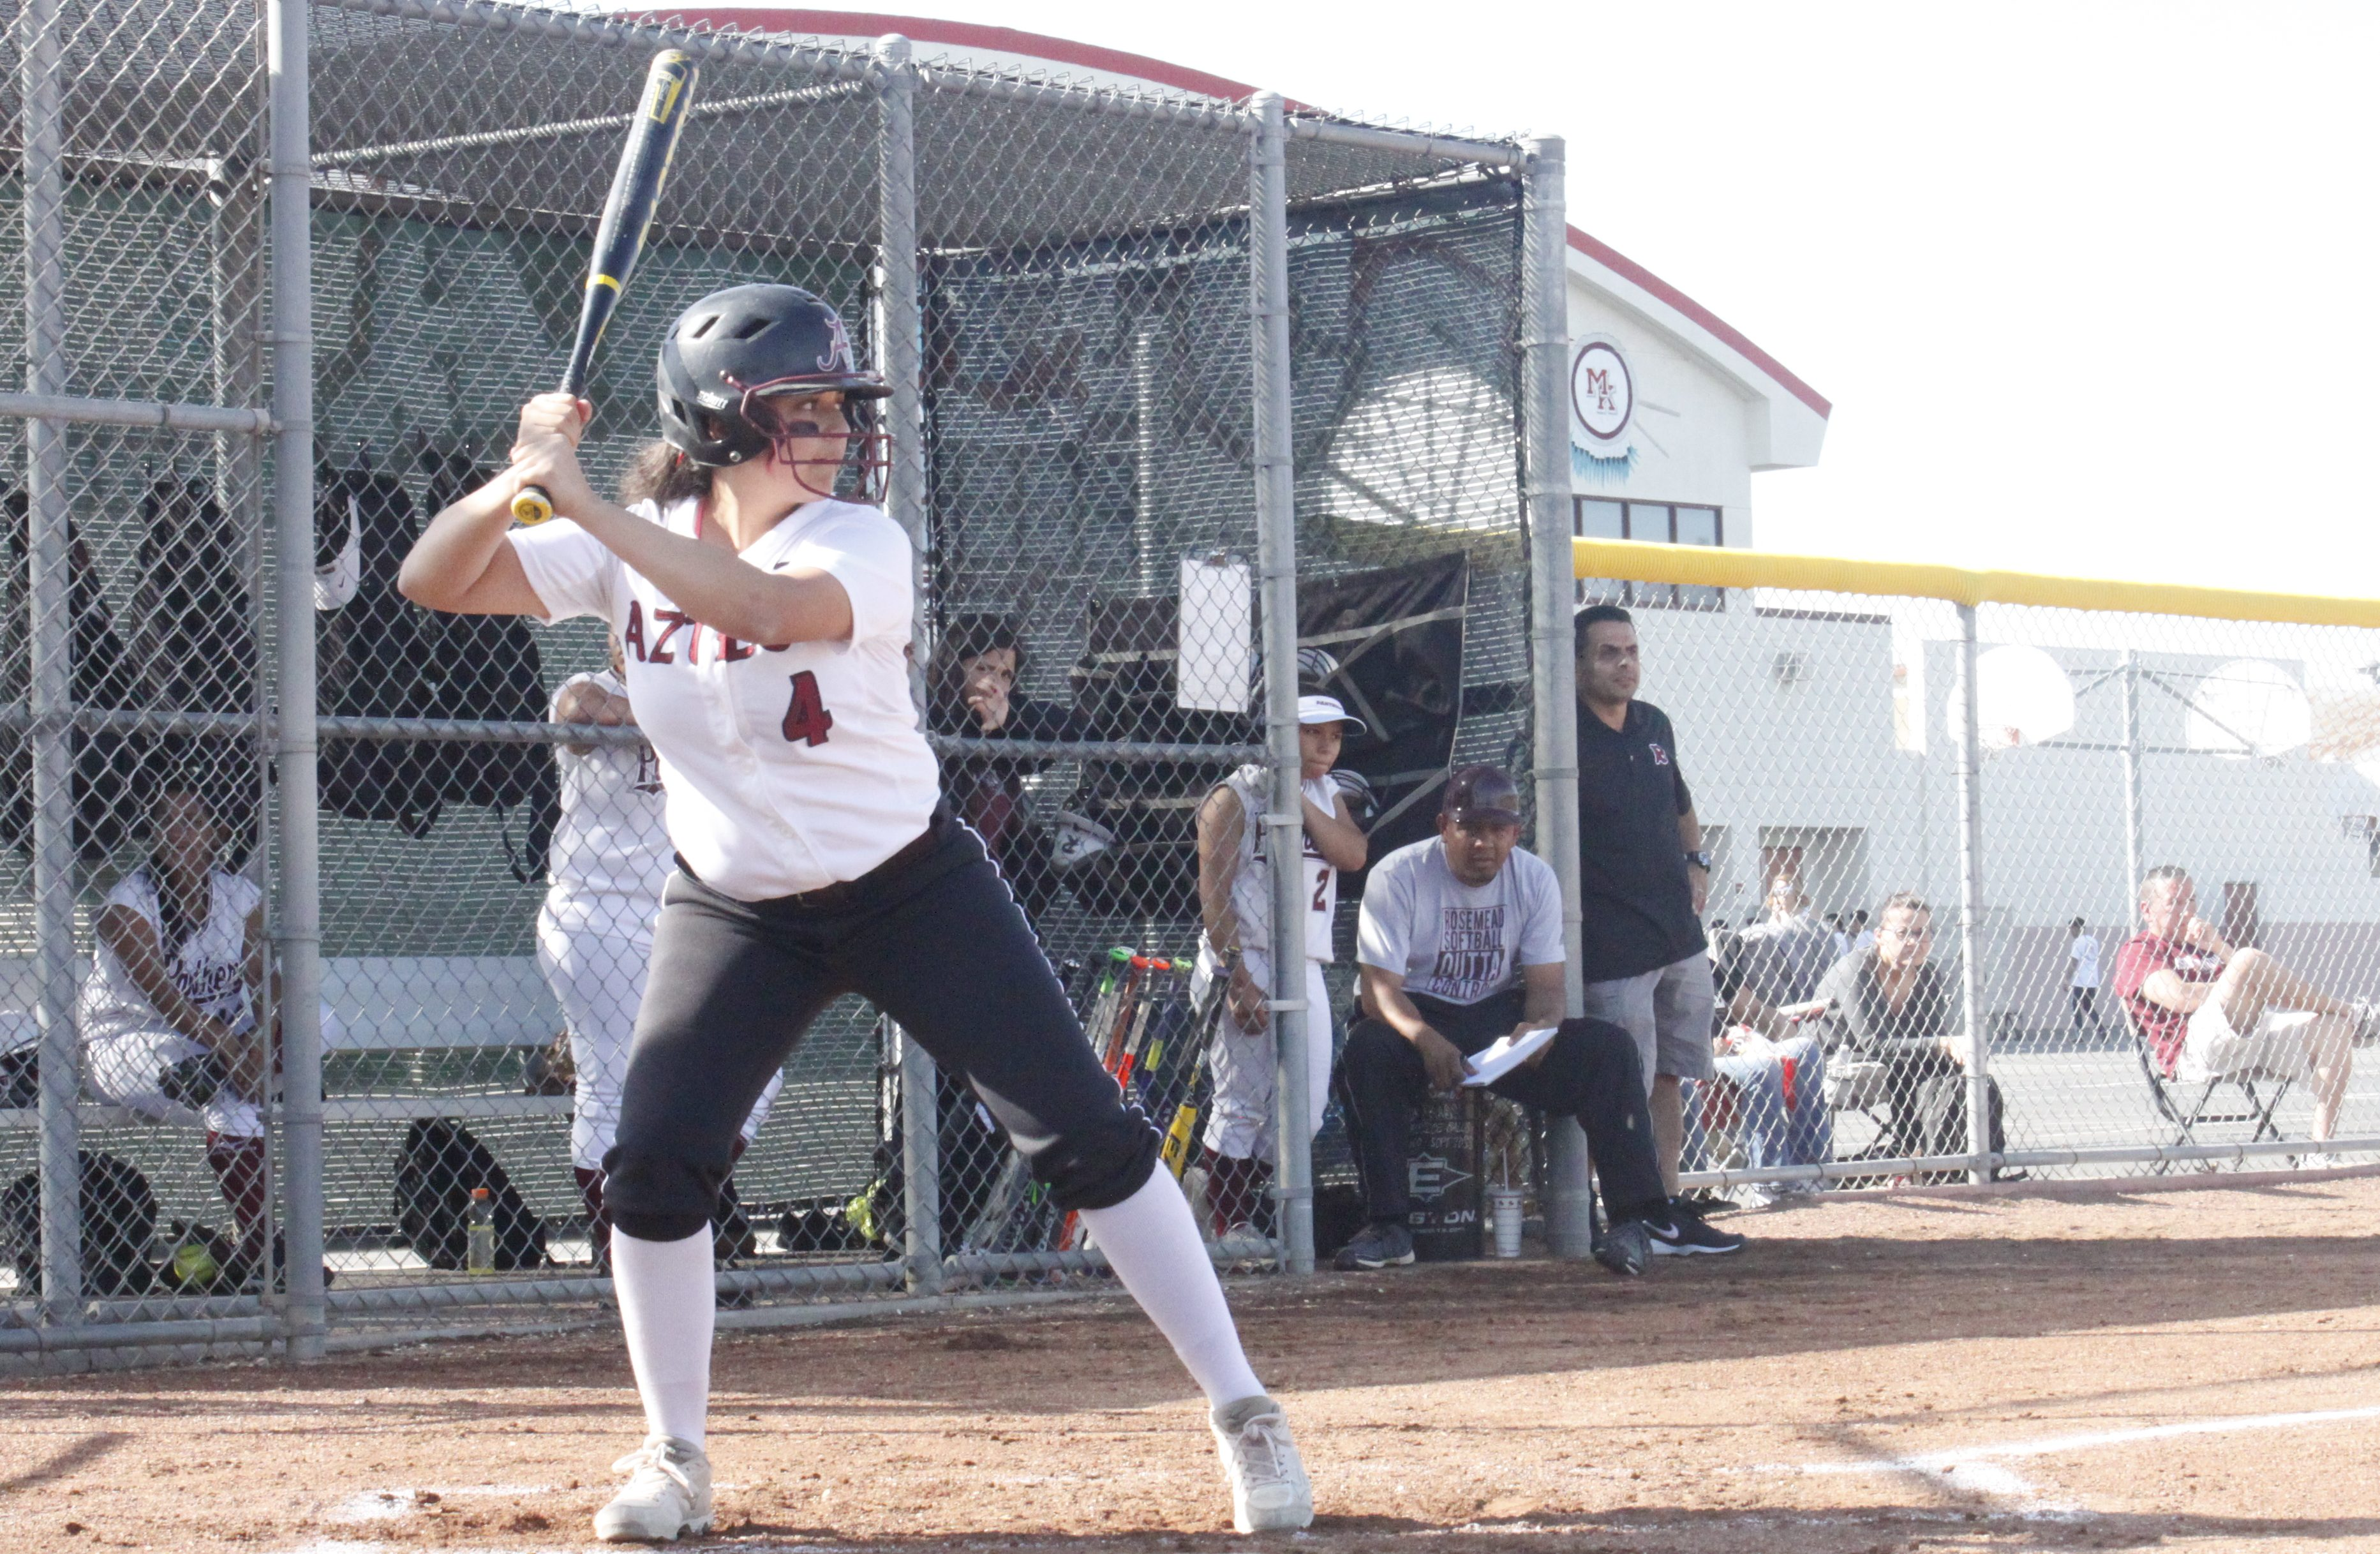 Sophomore Jacqueline Sandoval eyes the ball as she prepares to bat. THE AZTEC